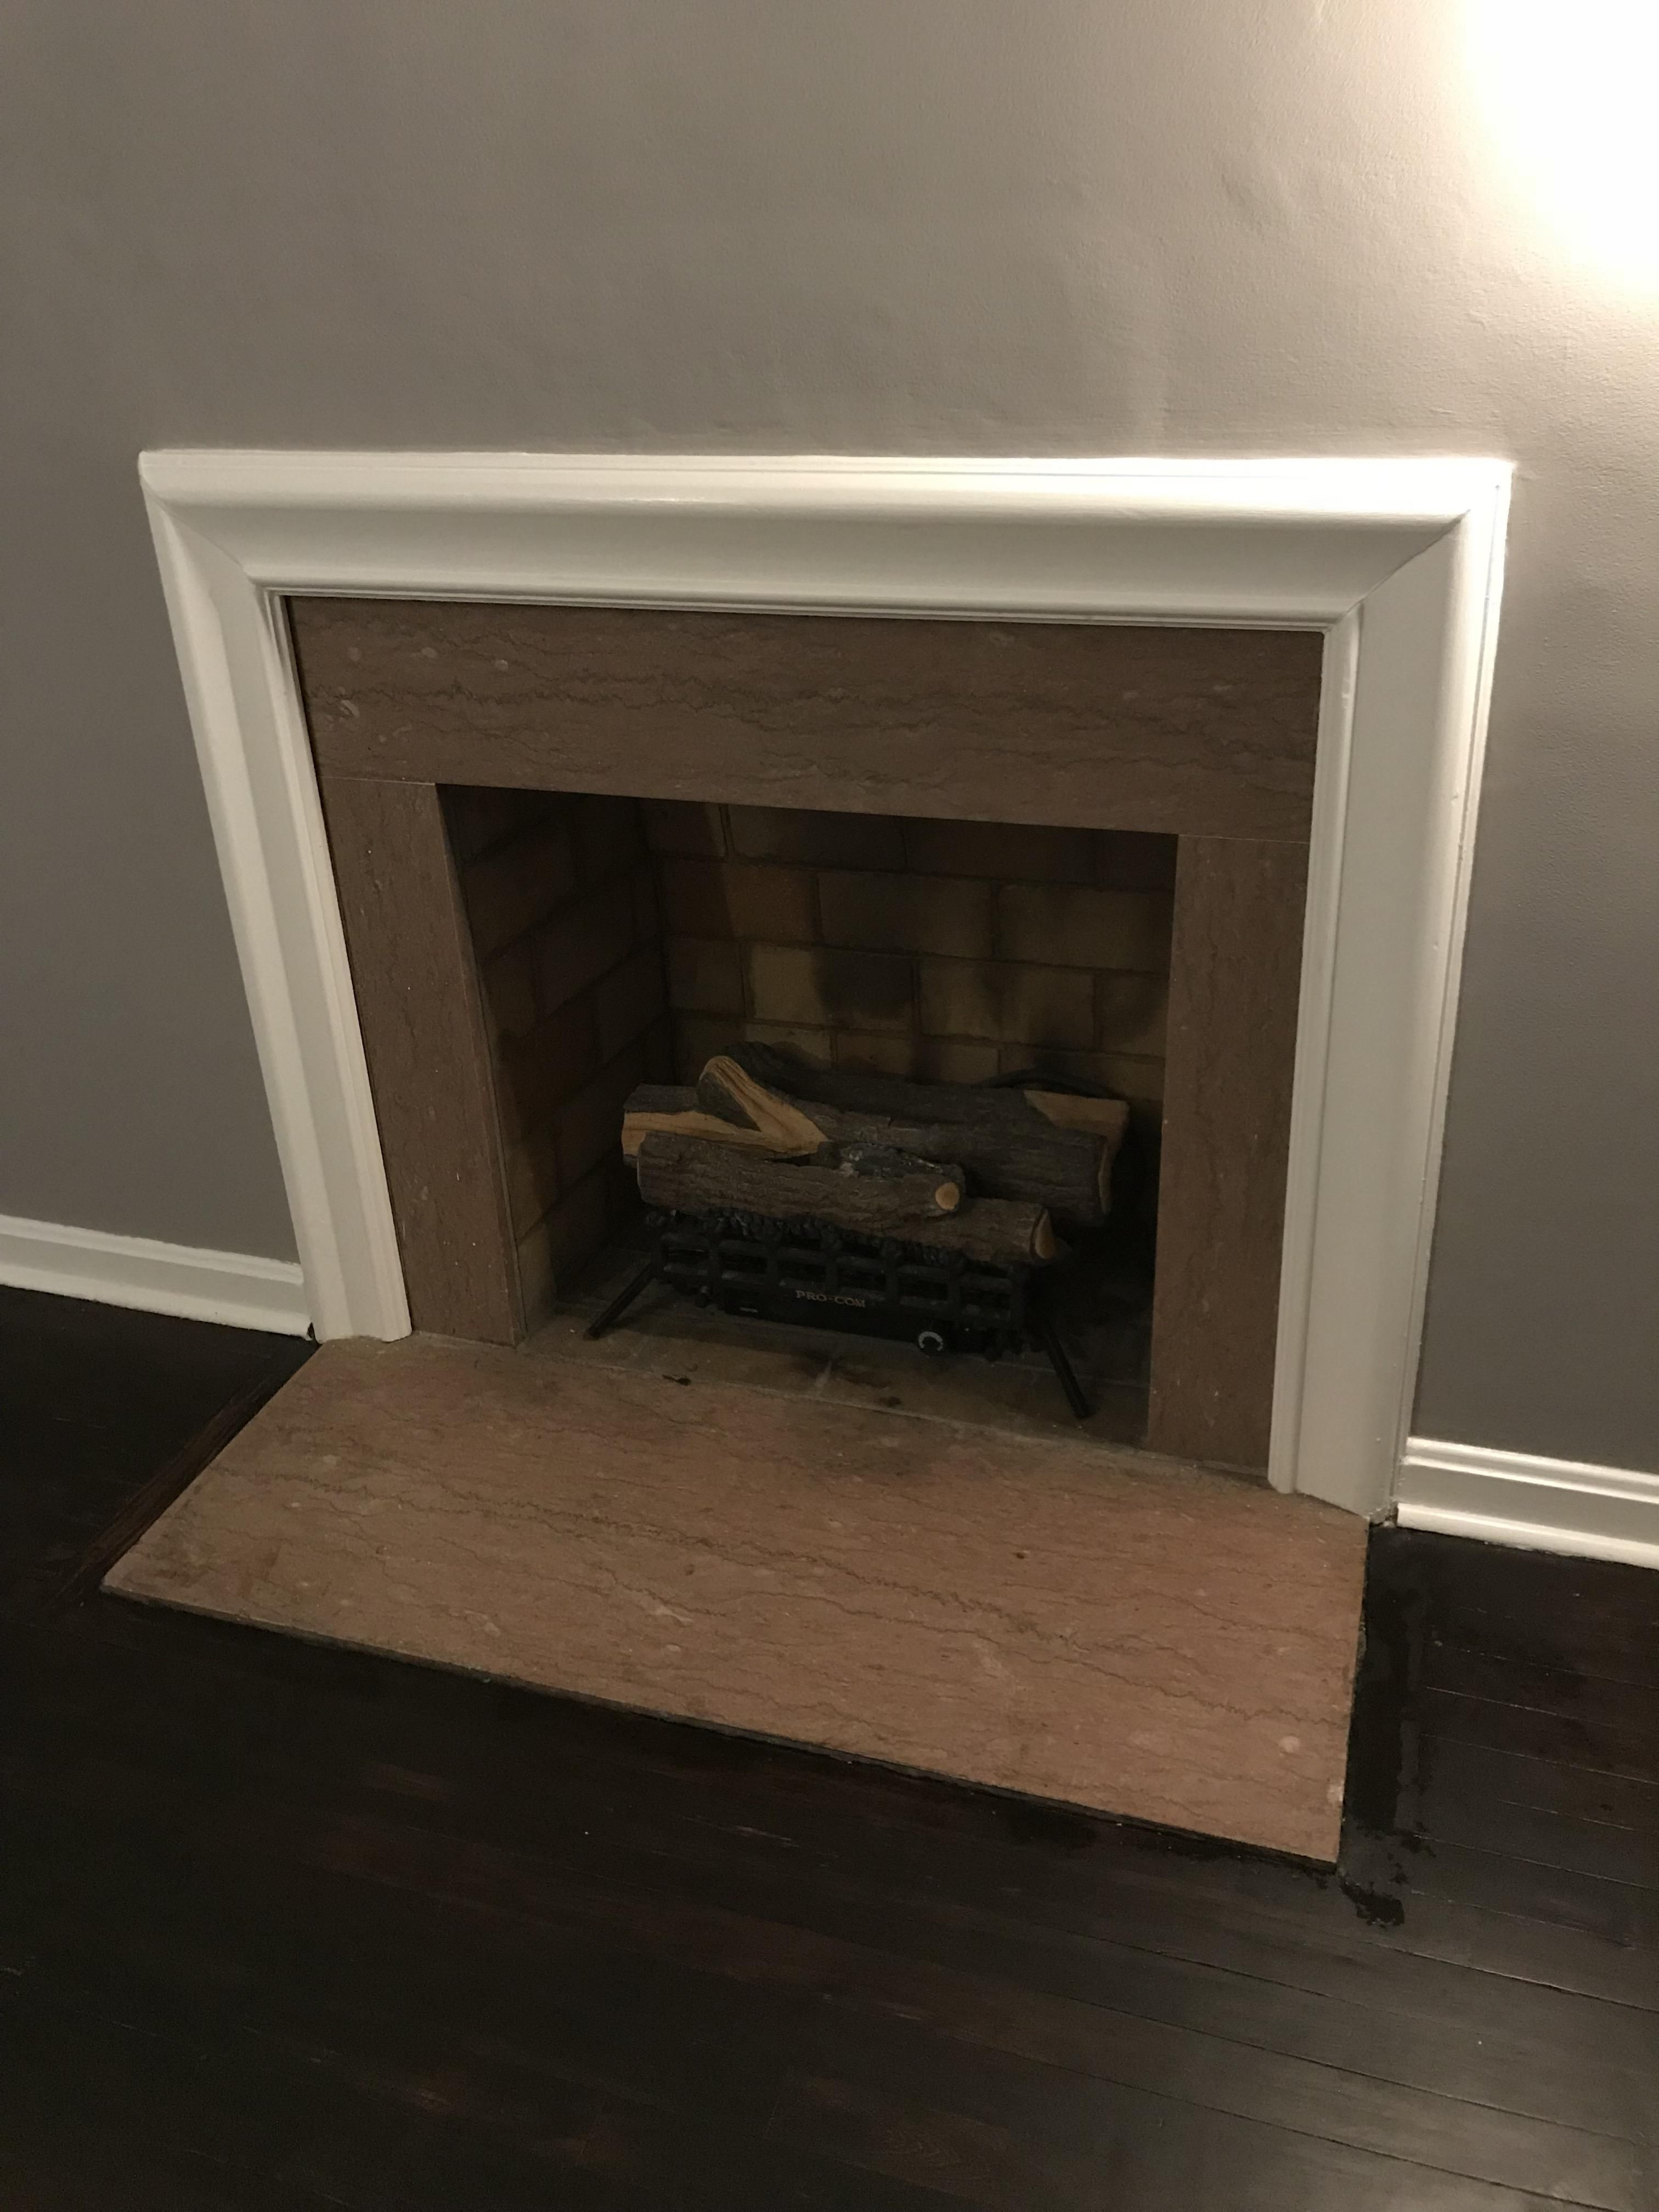 Any Advice On How To Modernize This Fireplace Wed Rather